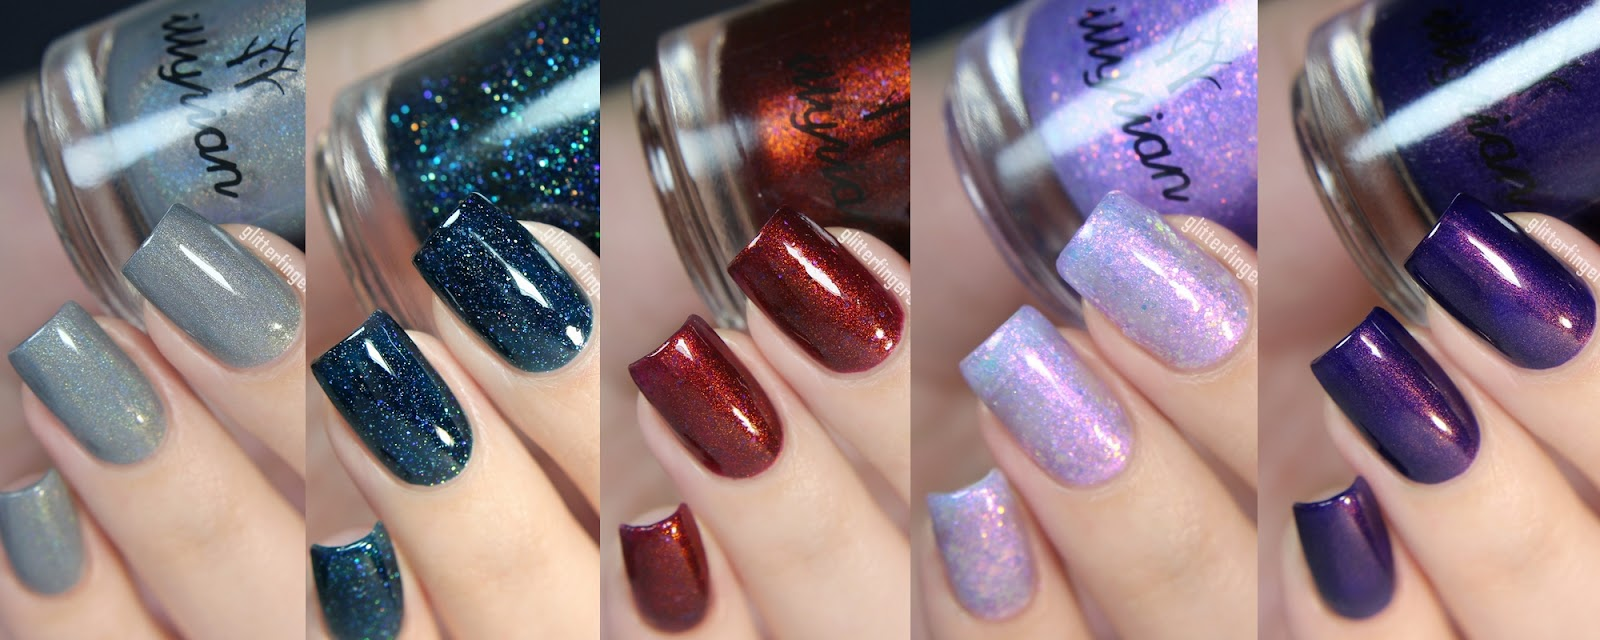 Illyrian Polish | Winter 2016 ~ Glitterfingersss in english